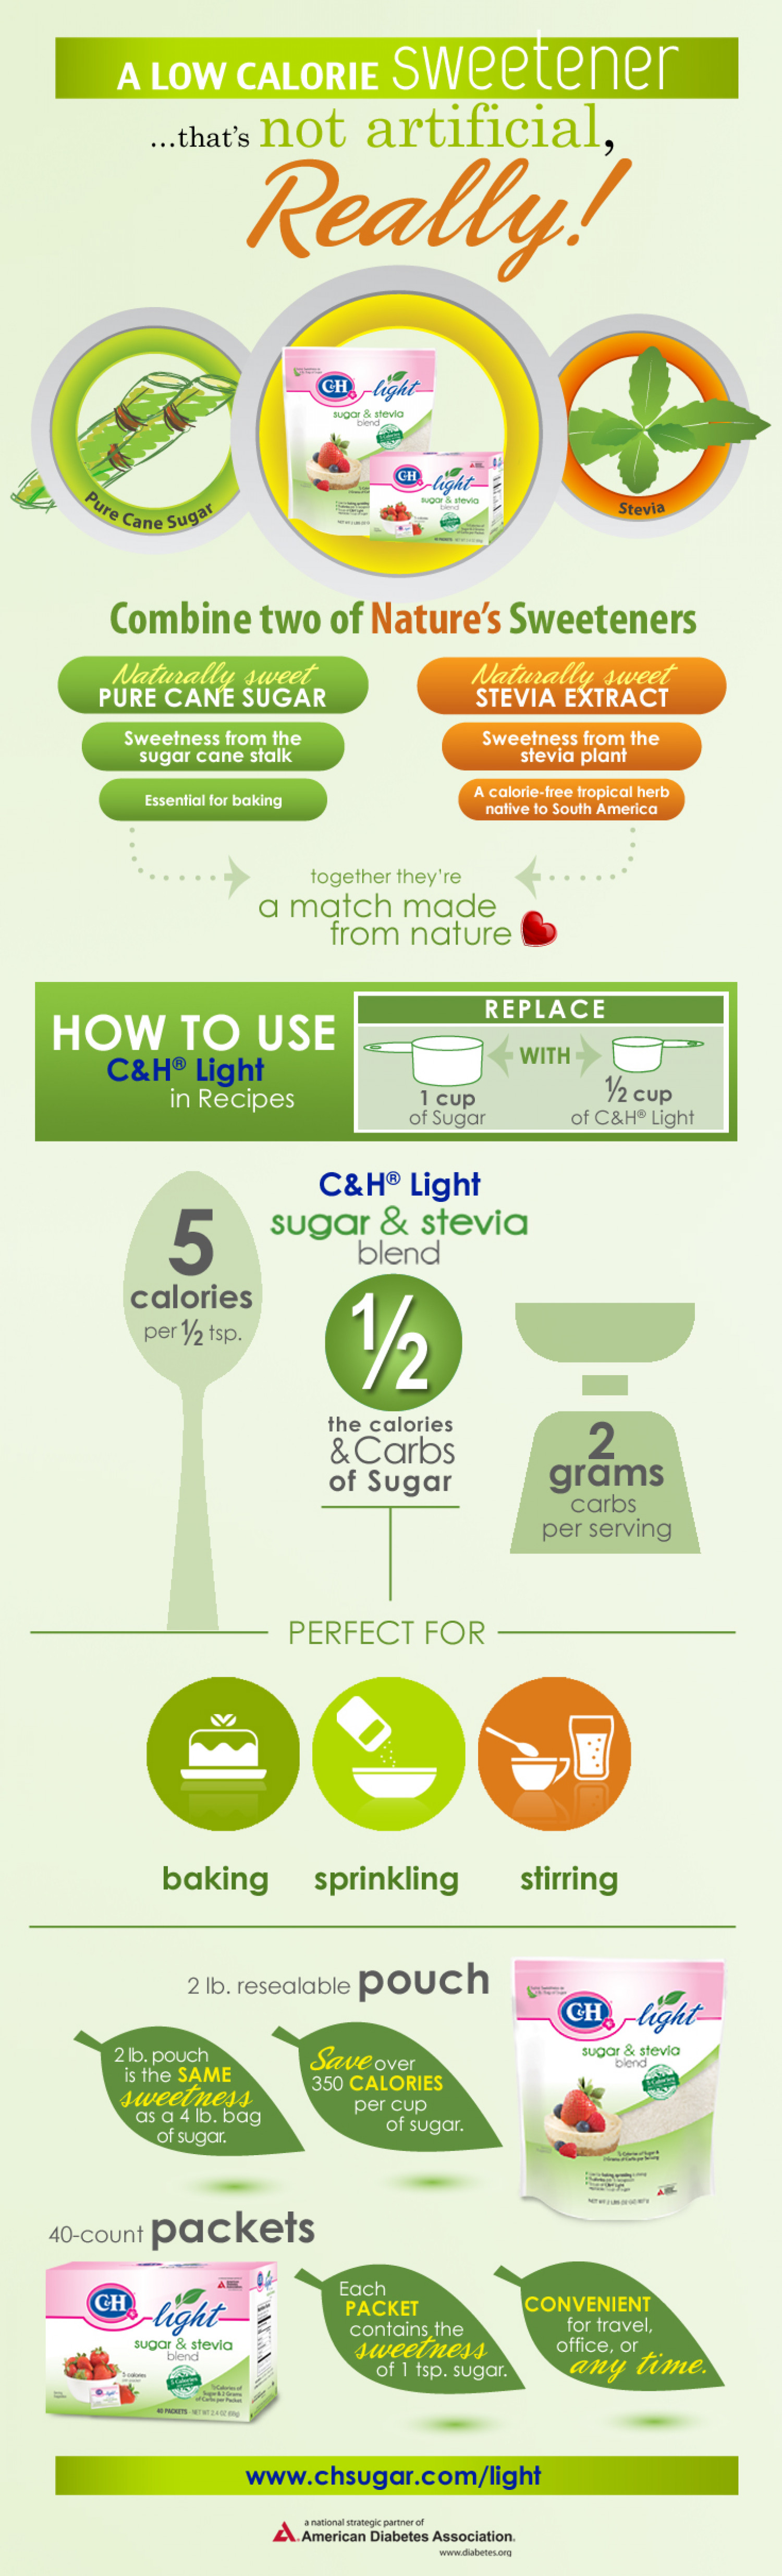 C&H® Light: Combining Two of Nature's Sweeteners Infographic